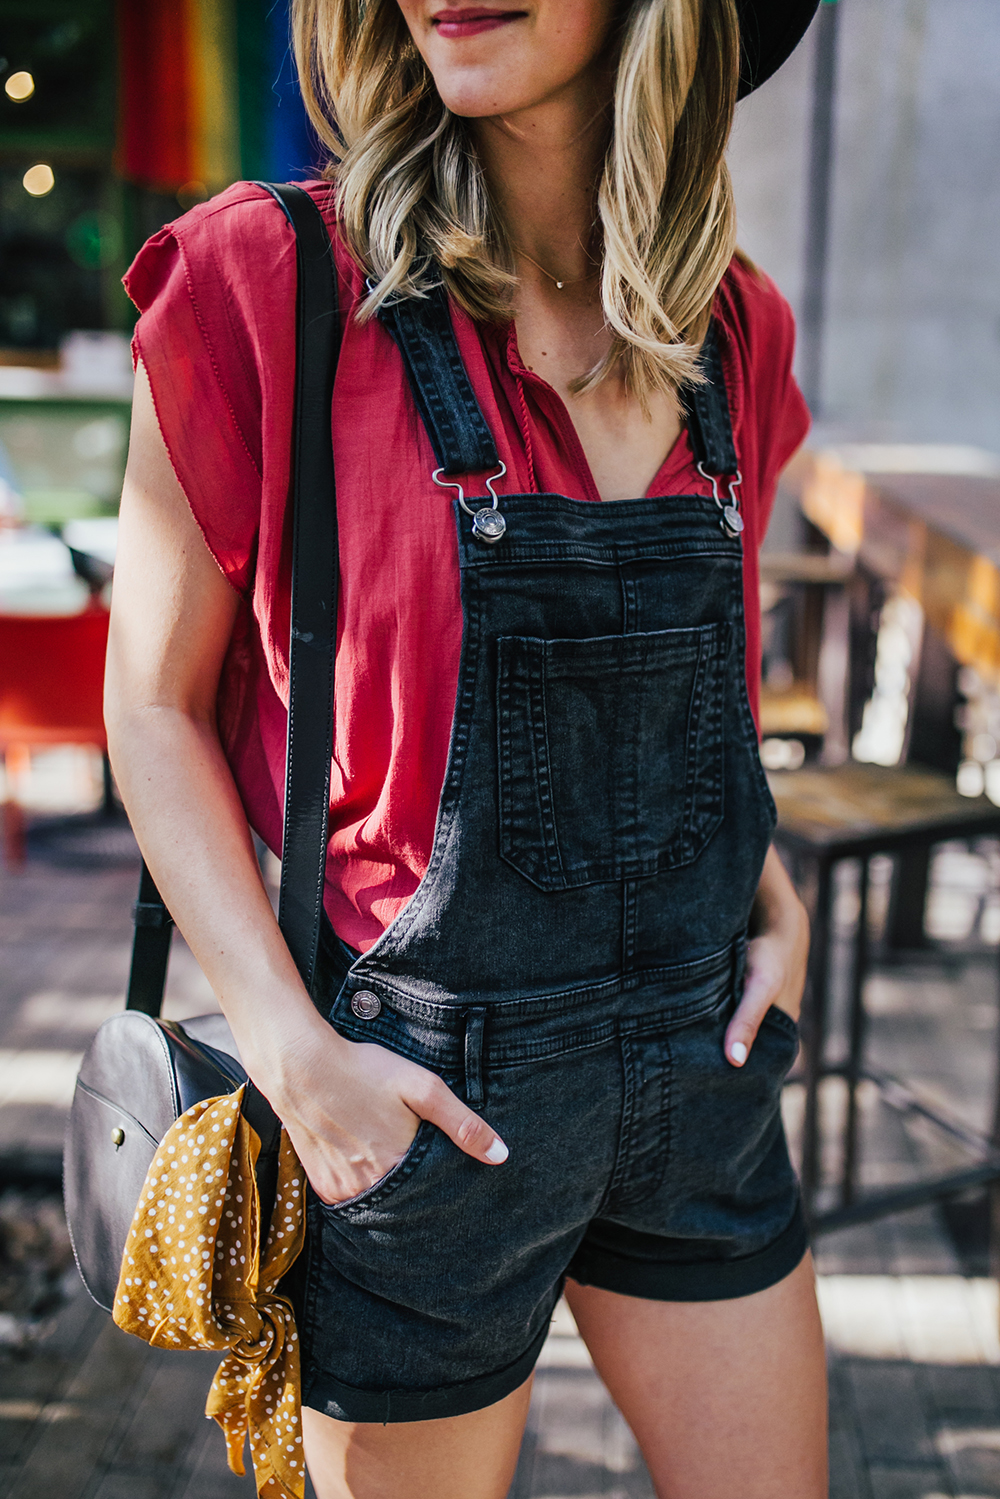 livvyland-blog-olivia-watson-black-short-overalls-abercrombie-everlane-black-pointed-toe-flats-summer-outfit-jos-coffee-second-street-austin-texas-fashion-blogger-4